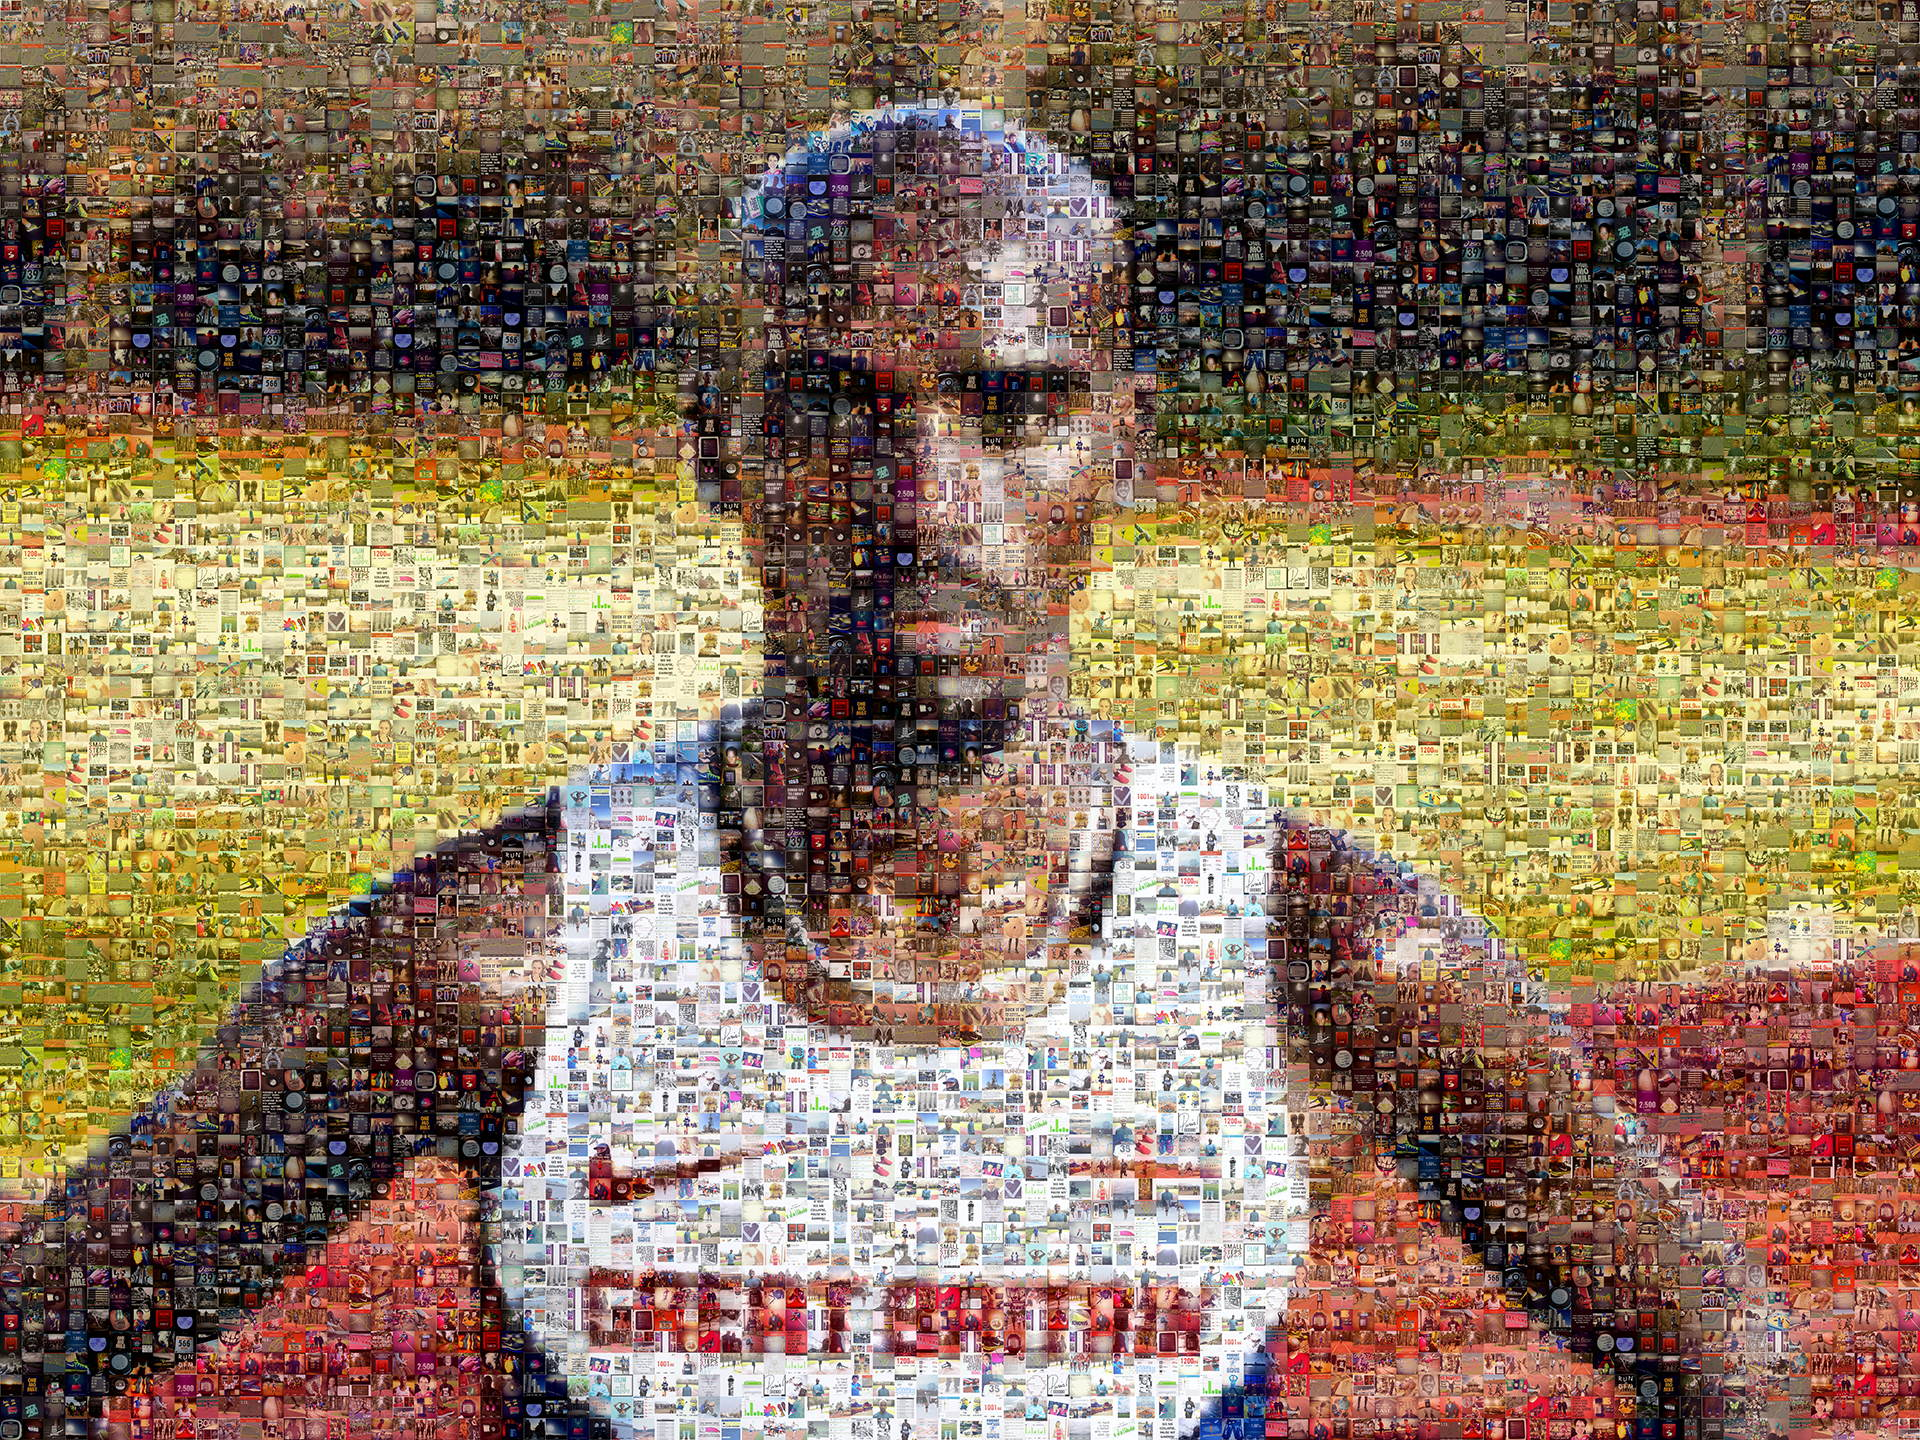 photo mosaic created using fan submitted running photos